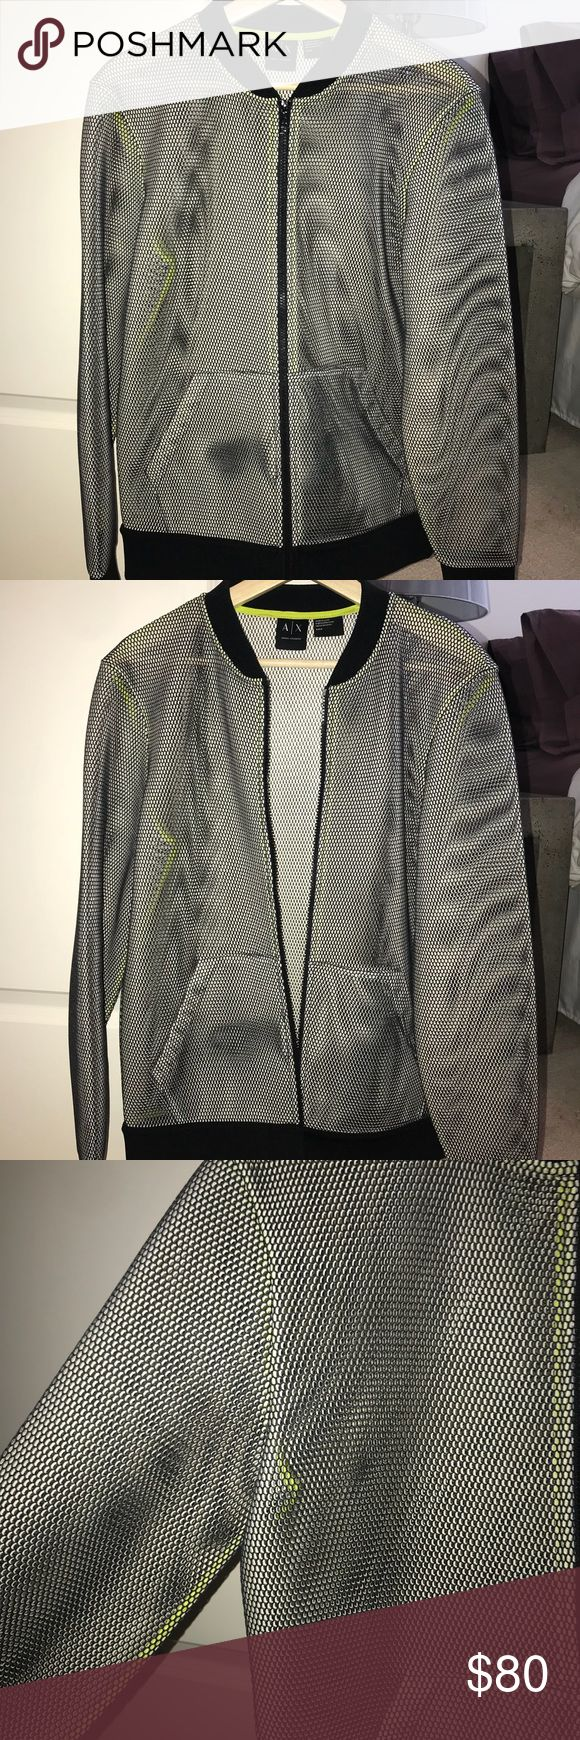 Armani Exchange Mesh Bomber Jacket Mesh neoprene bomber jacket by Armani Exchange. Black mesh with black bands at wrist and waist. Mesh see through, has lime green piping on the inside. Great layering piece, only worn 2 times! Men's size small. A/X Armani Exchange Jackets & Coats Bomber & Varsity